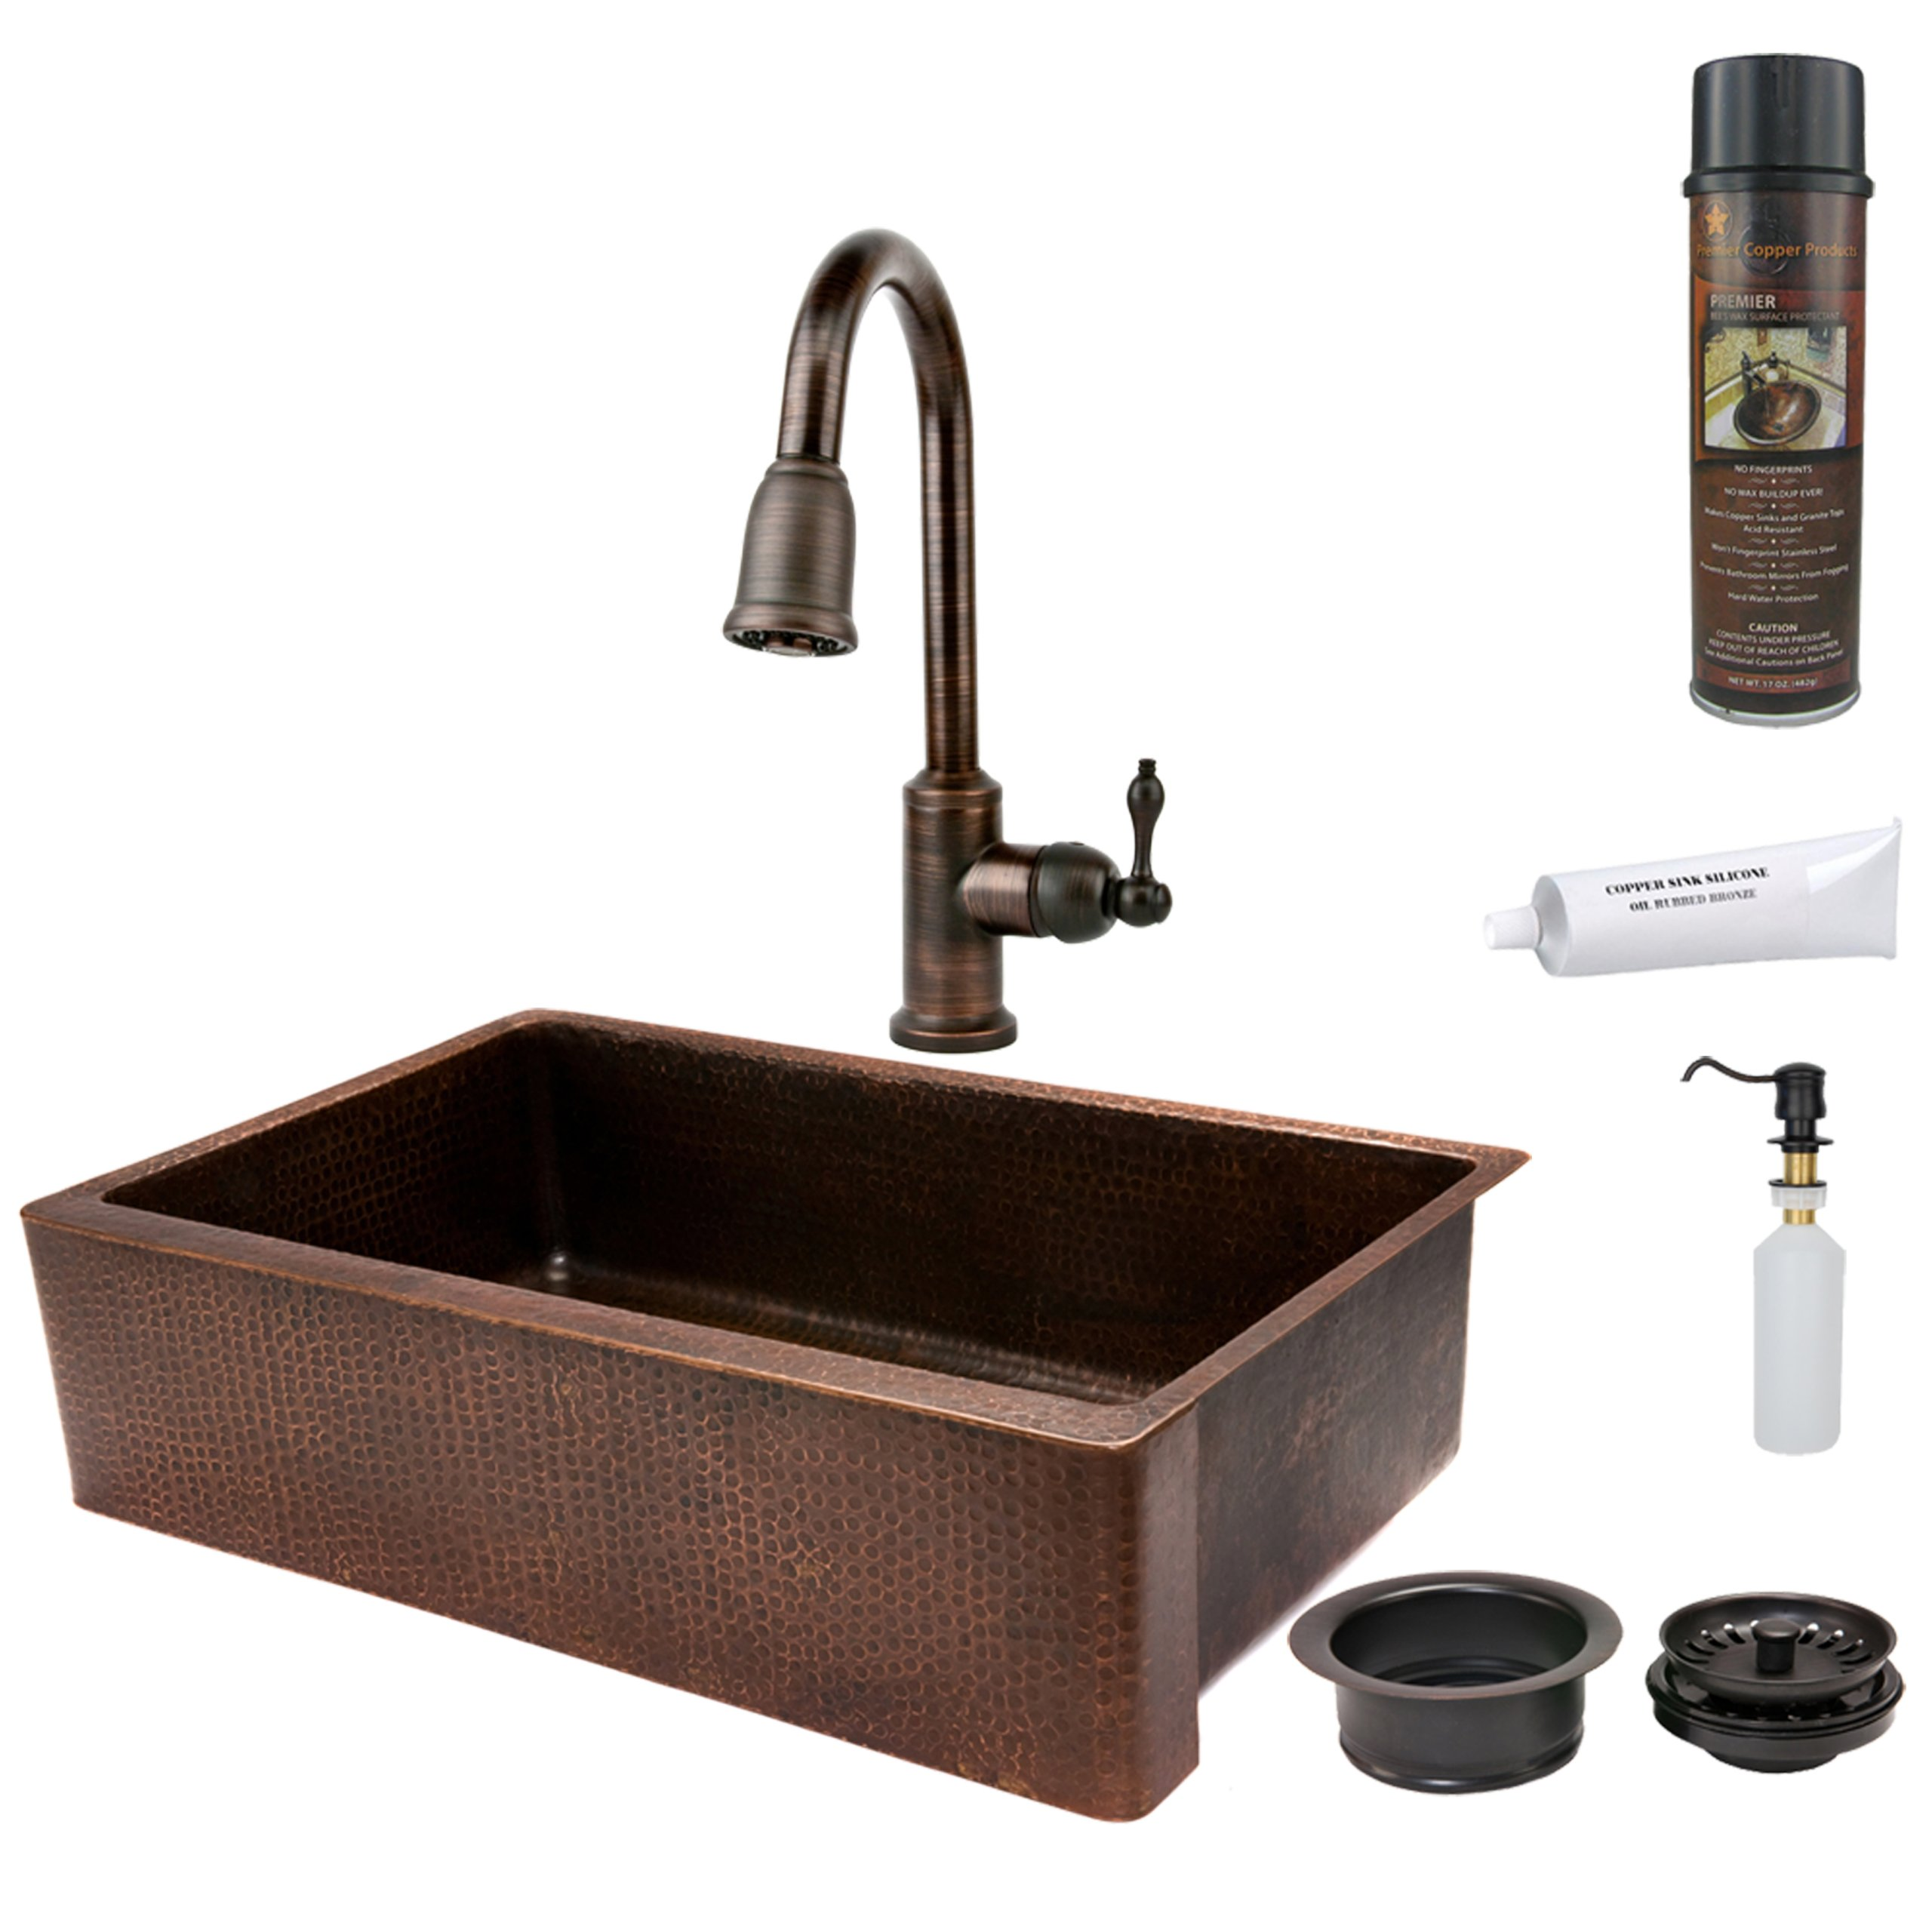 Premier Copper Products KSP2_KASDB35229 35-Inch Hammered Copper Kitchen Apron Single Basin Sink with Pull Down Faucet, Oil Rubbed Bronze by Premier Copper Products